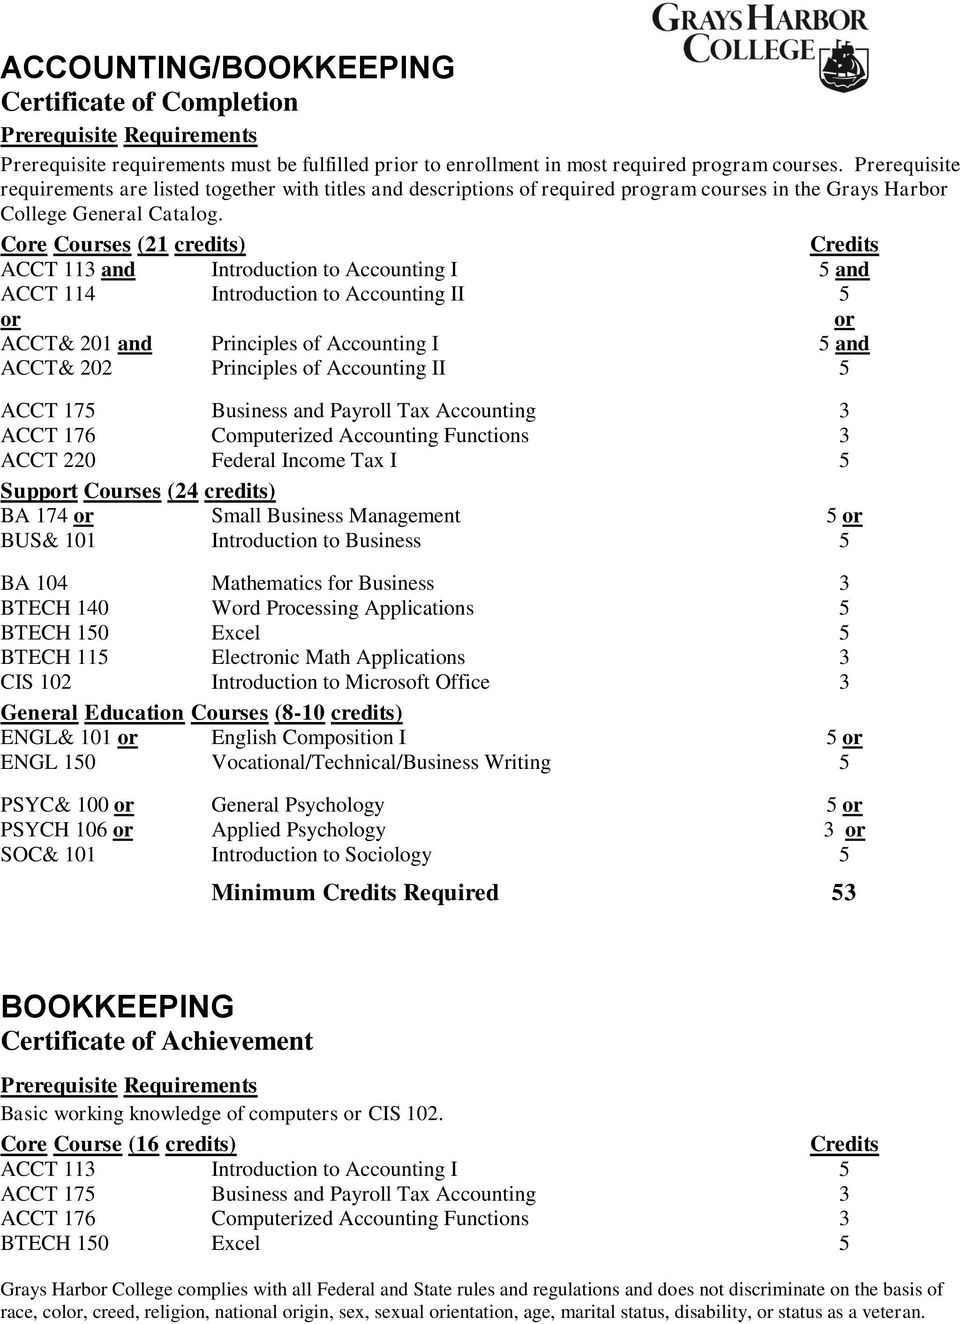 Ce Courses (21 credits) Credits ACCT 113 and Introduction to Accounting I 5 and ACCT 114 Introduction to Accounting II 5 ACCT& 201 and Principles of Accounting I 5 and ACCT& 202 Principles of